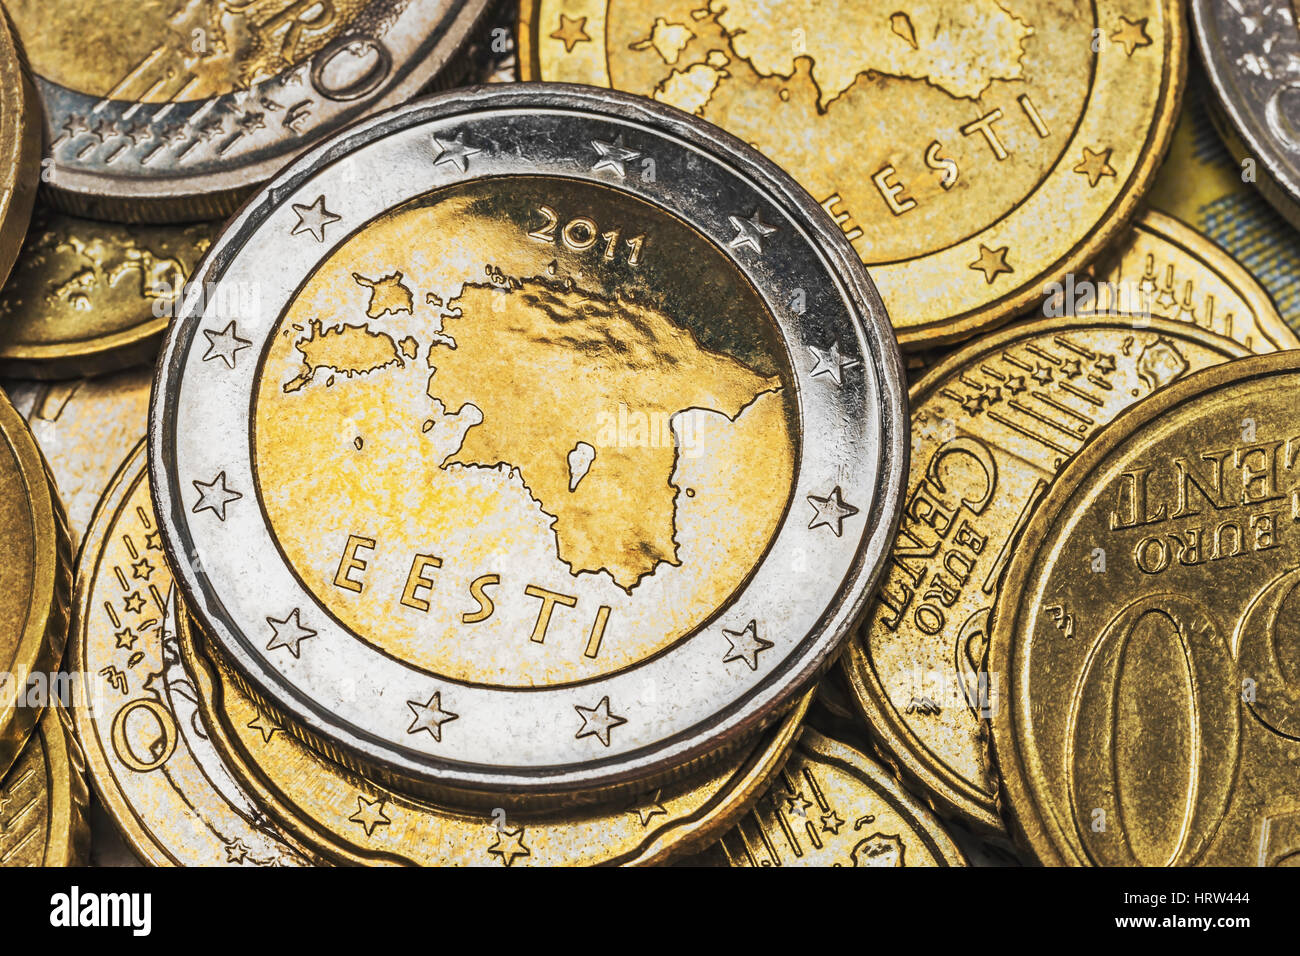 Cent Euro Eesti Estonia Photos Cent Euro Eesti Estonia Images Alamy